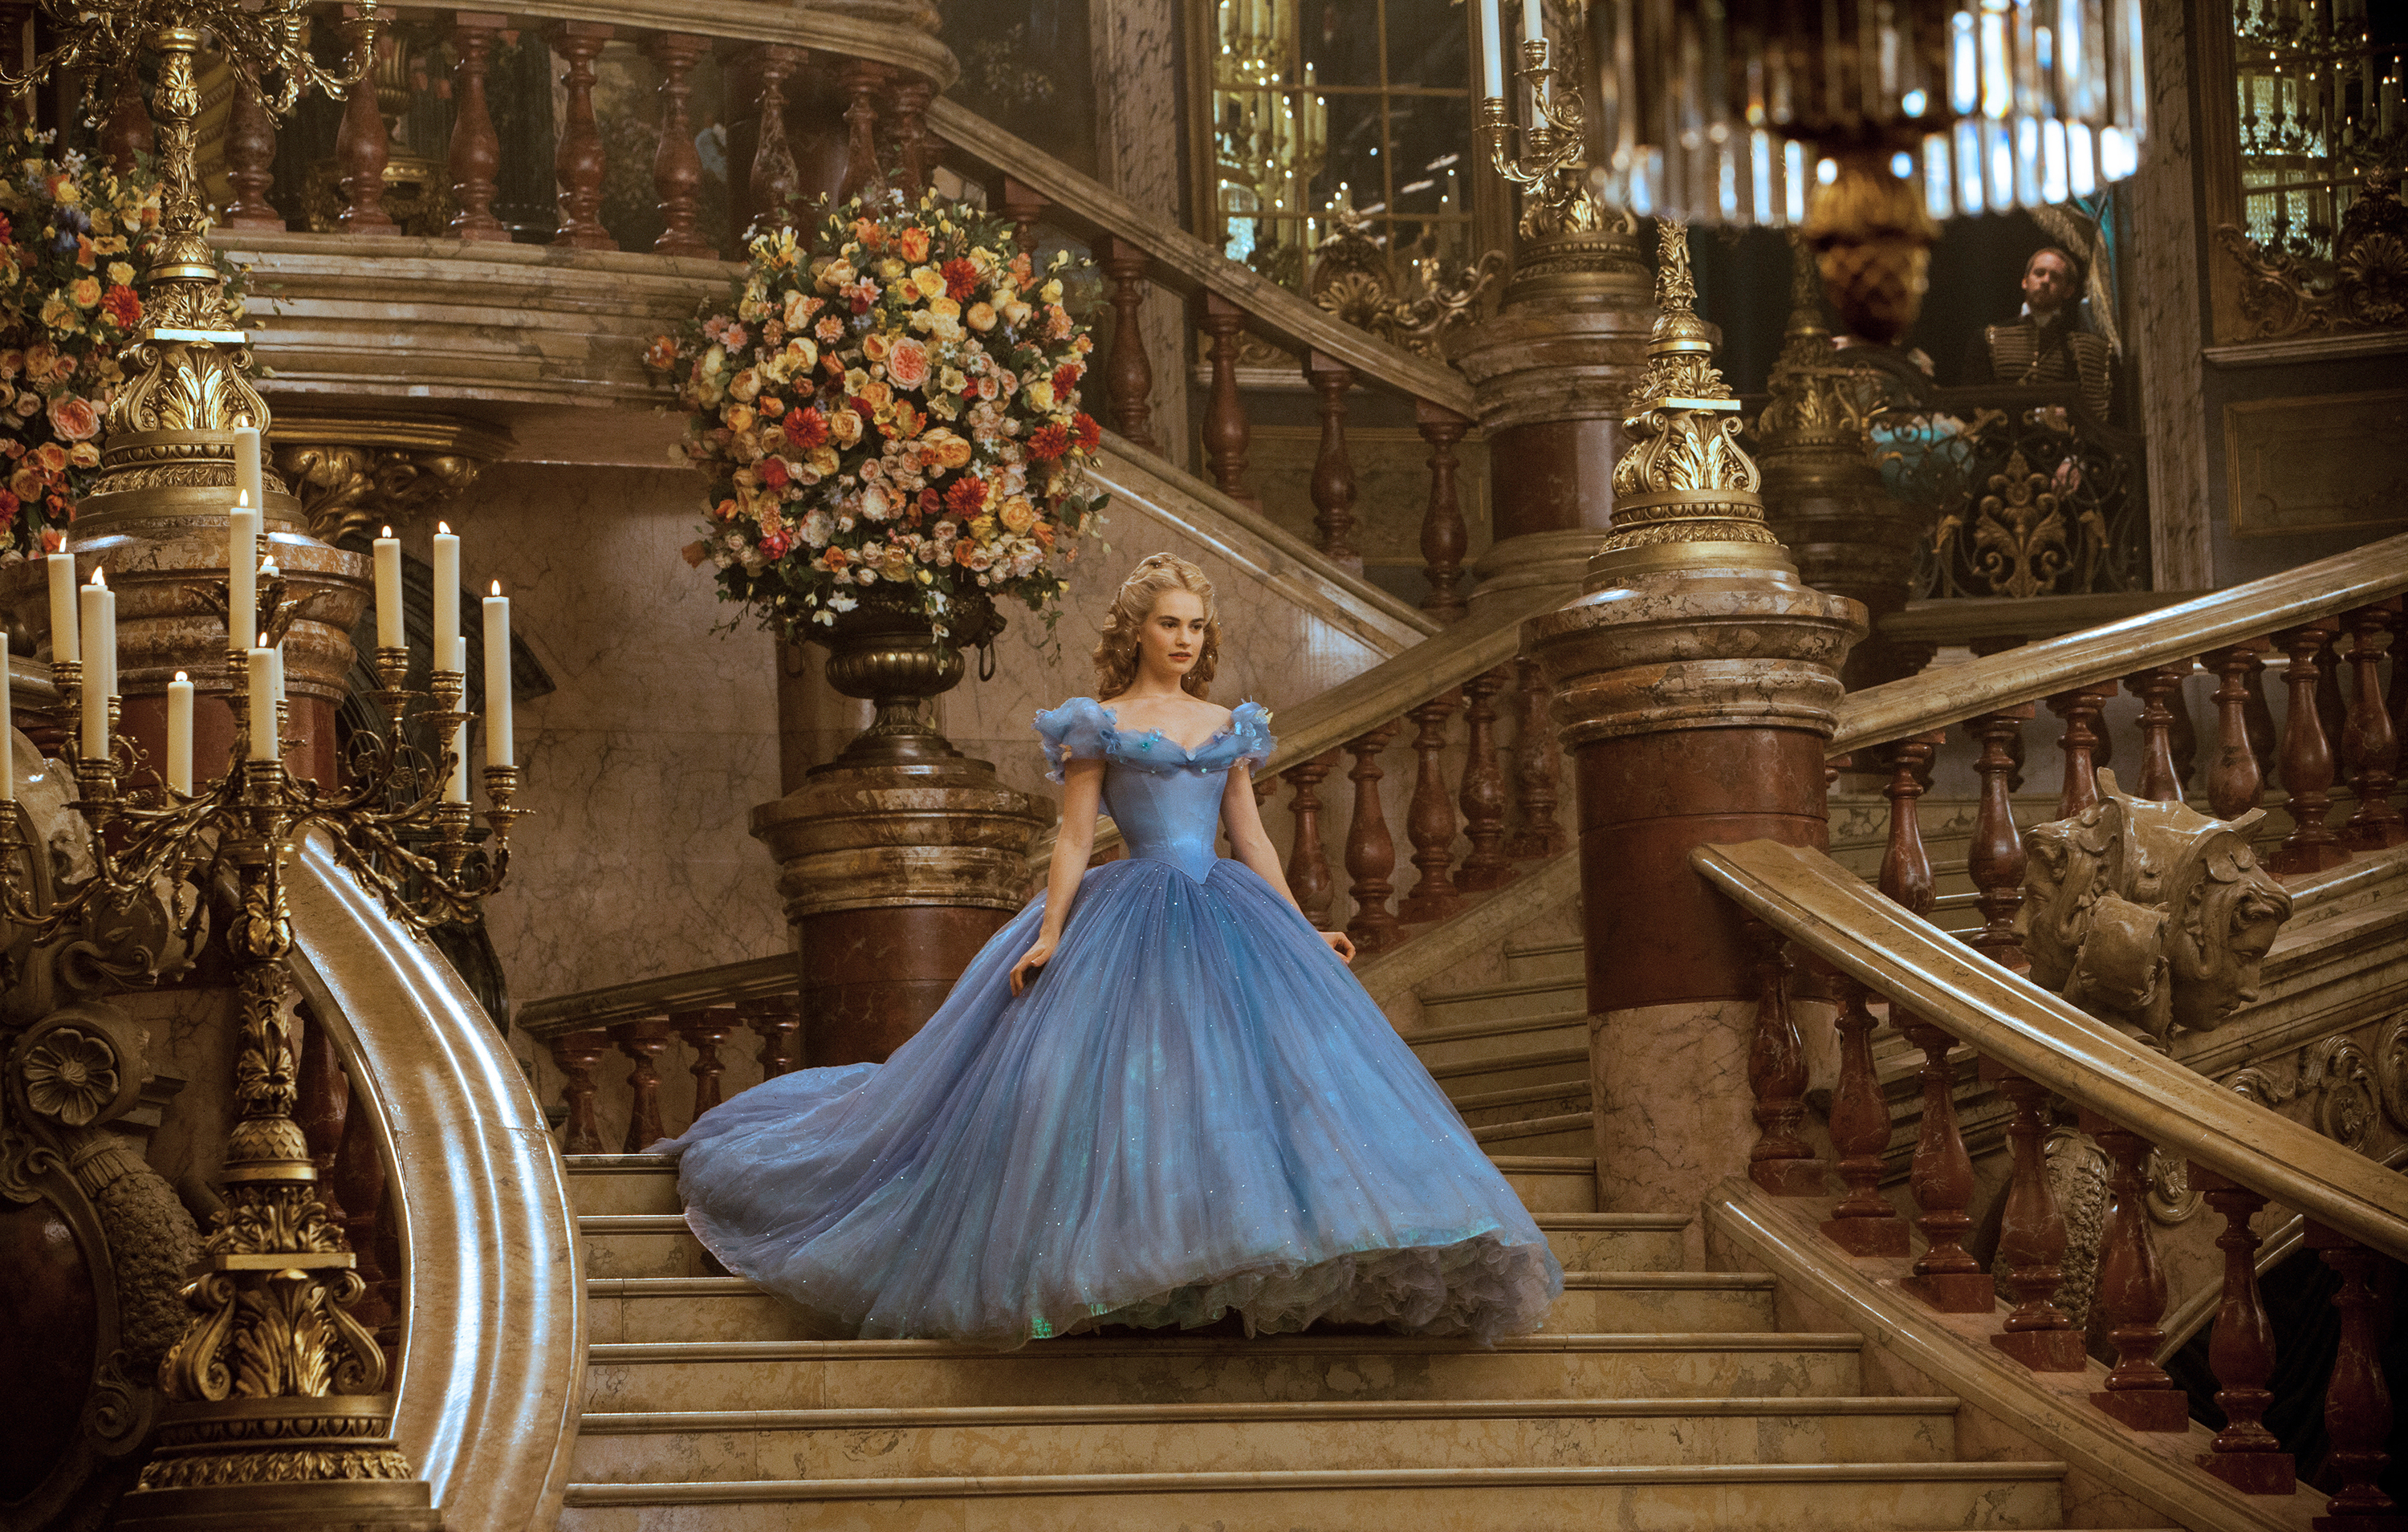 A Girl, A Shoe, A Prince: The Endlessly Evolving Cinderella